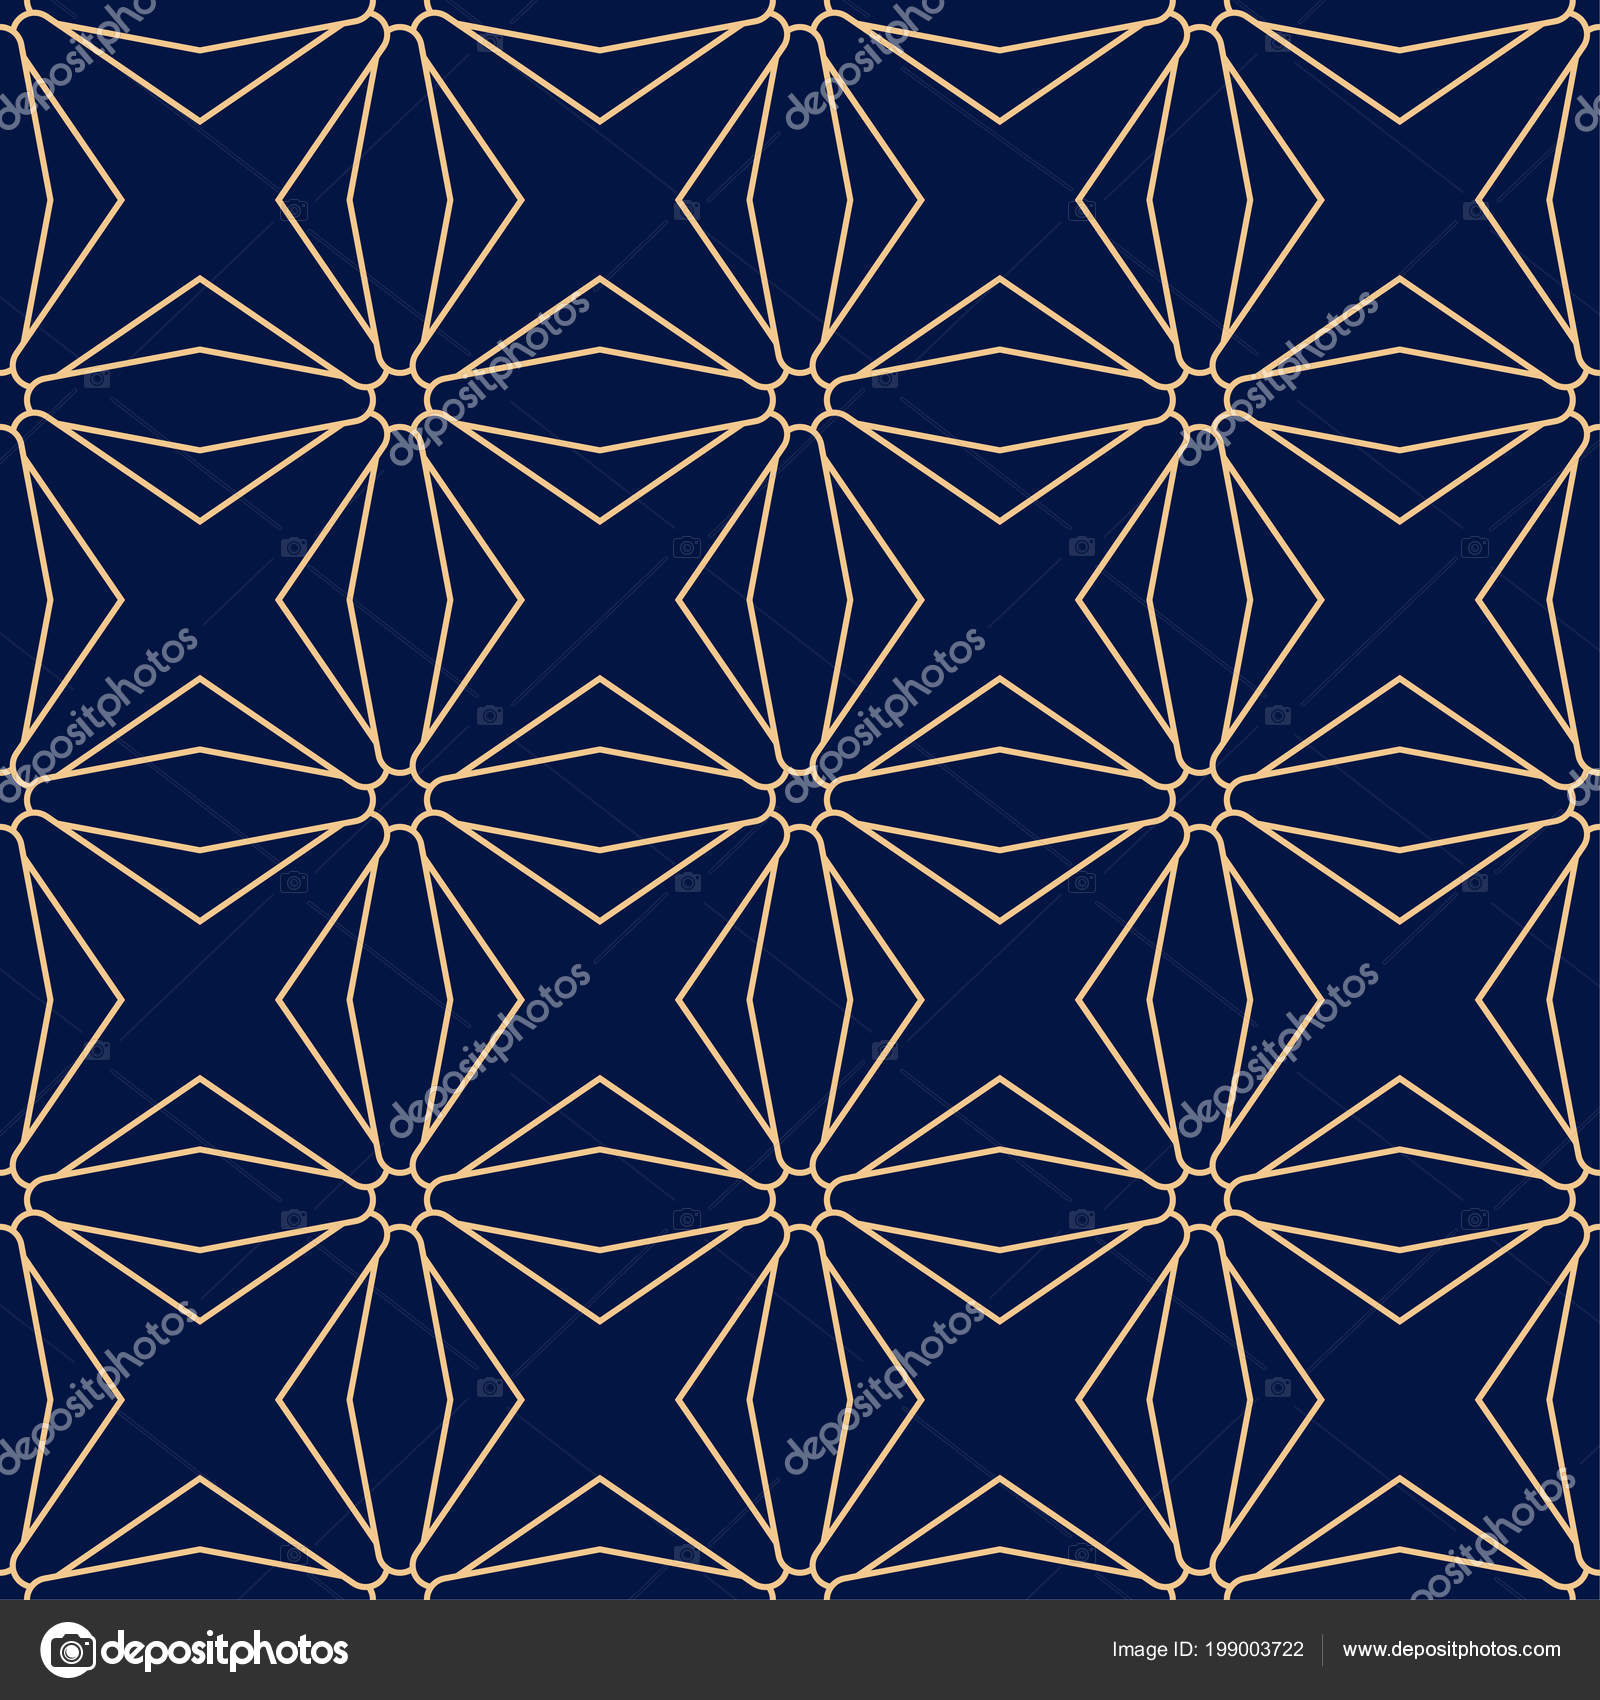 Golden Geometric Print Dark Blue Background Seamless Pattern Web Textile